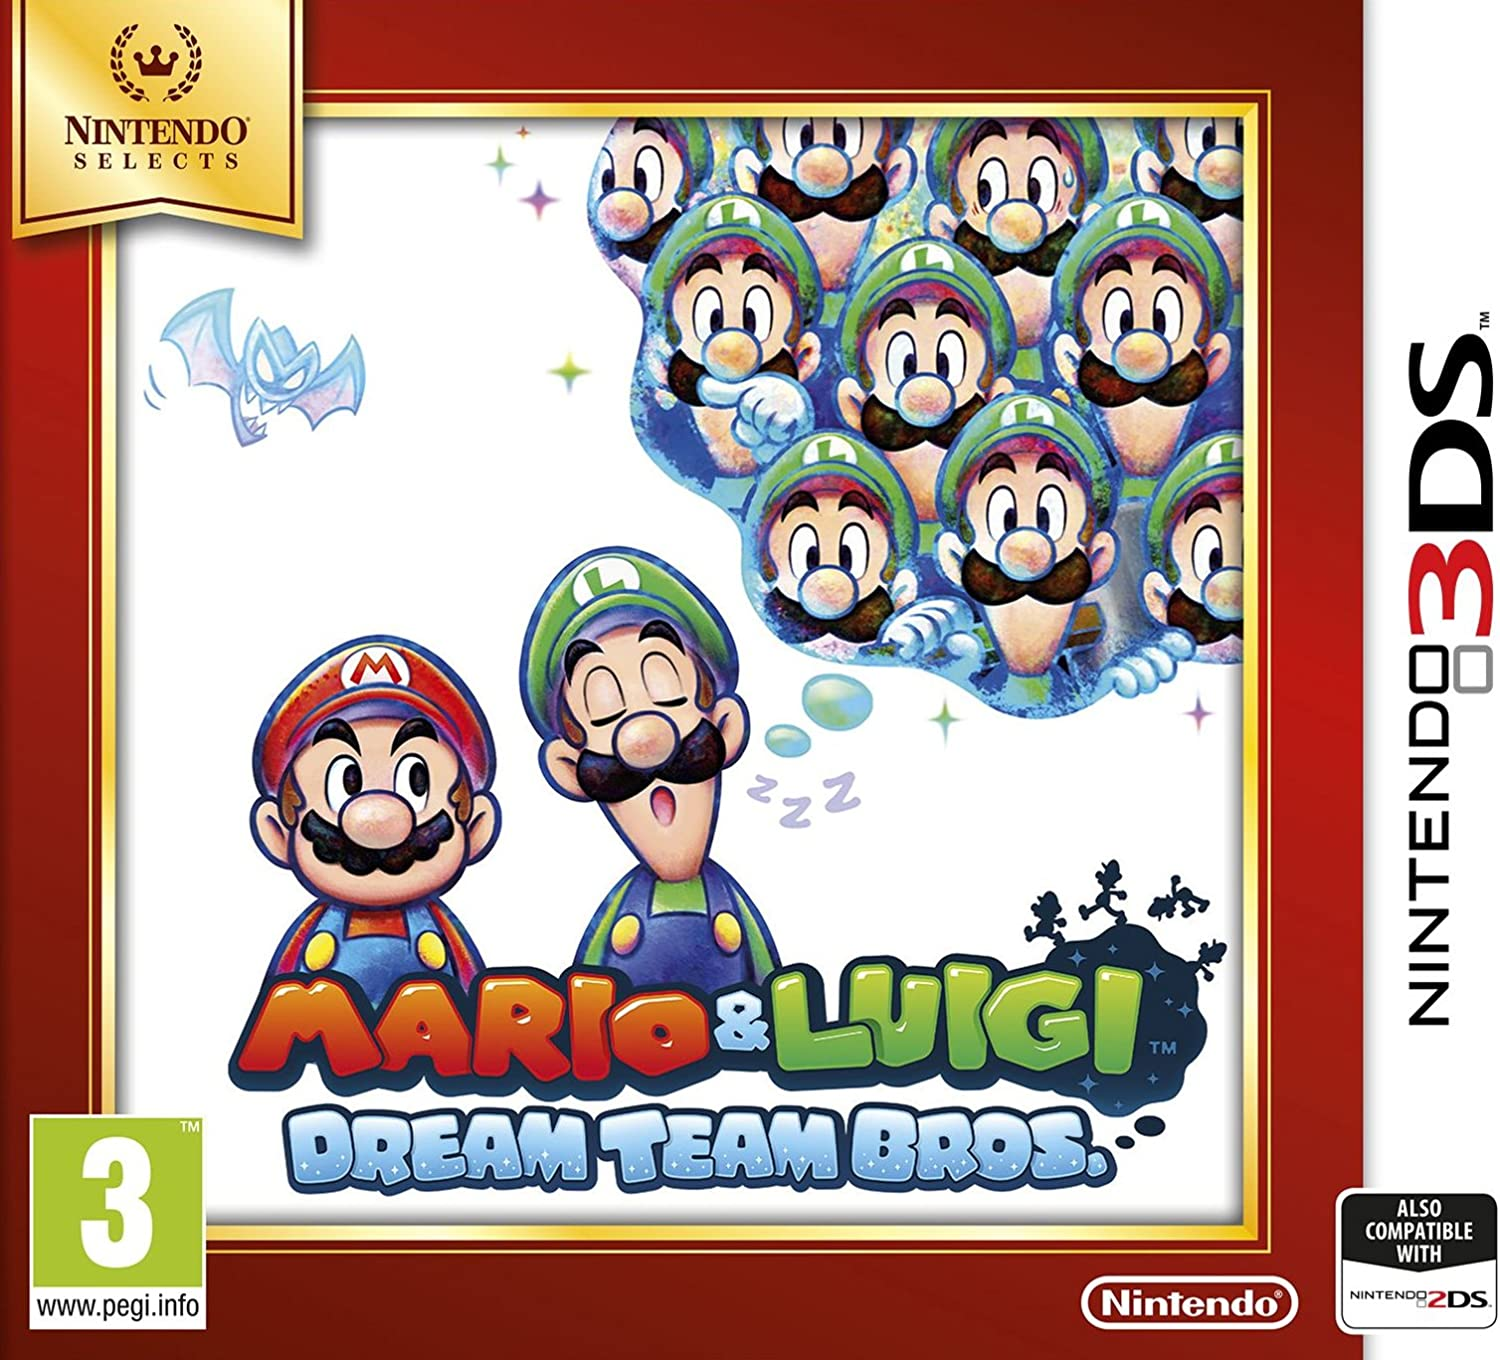 Mario & Luigi: Dream Team Bros. (Nintendo Selects): Amazon.es ...